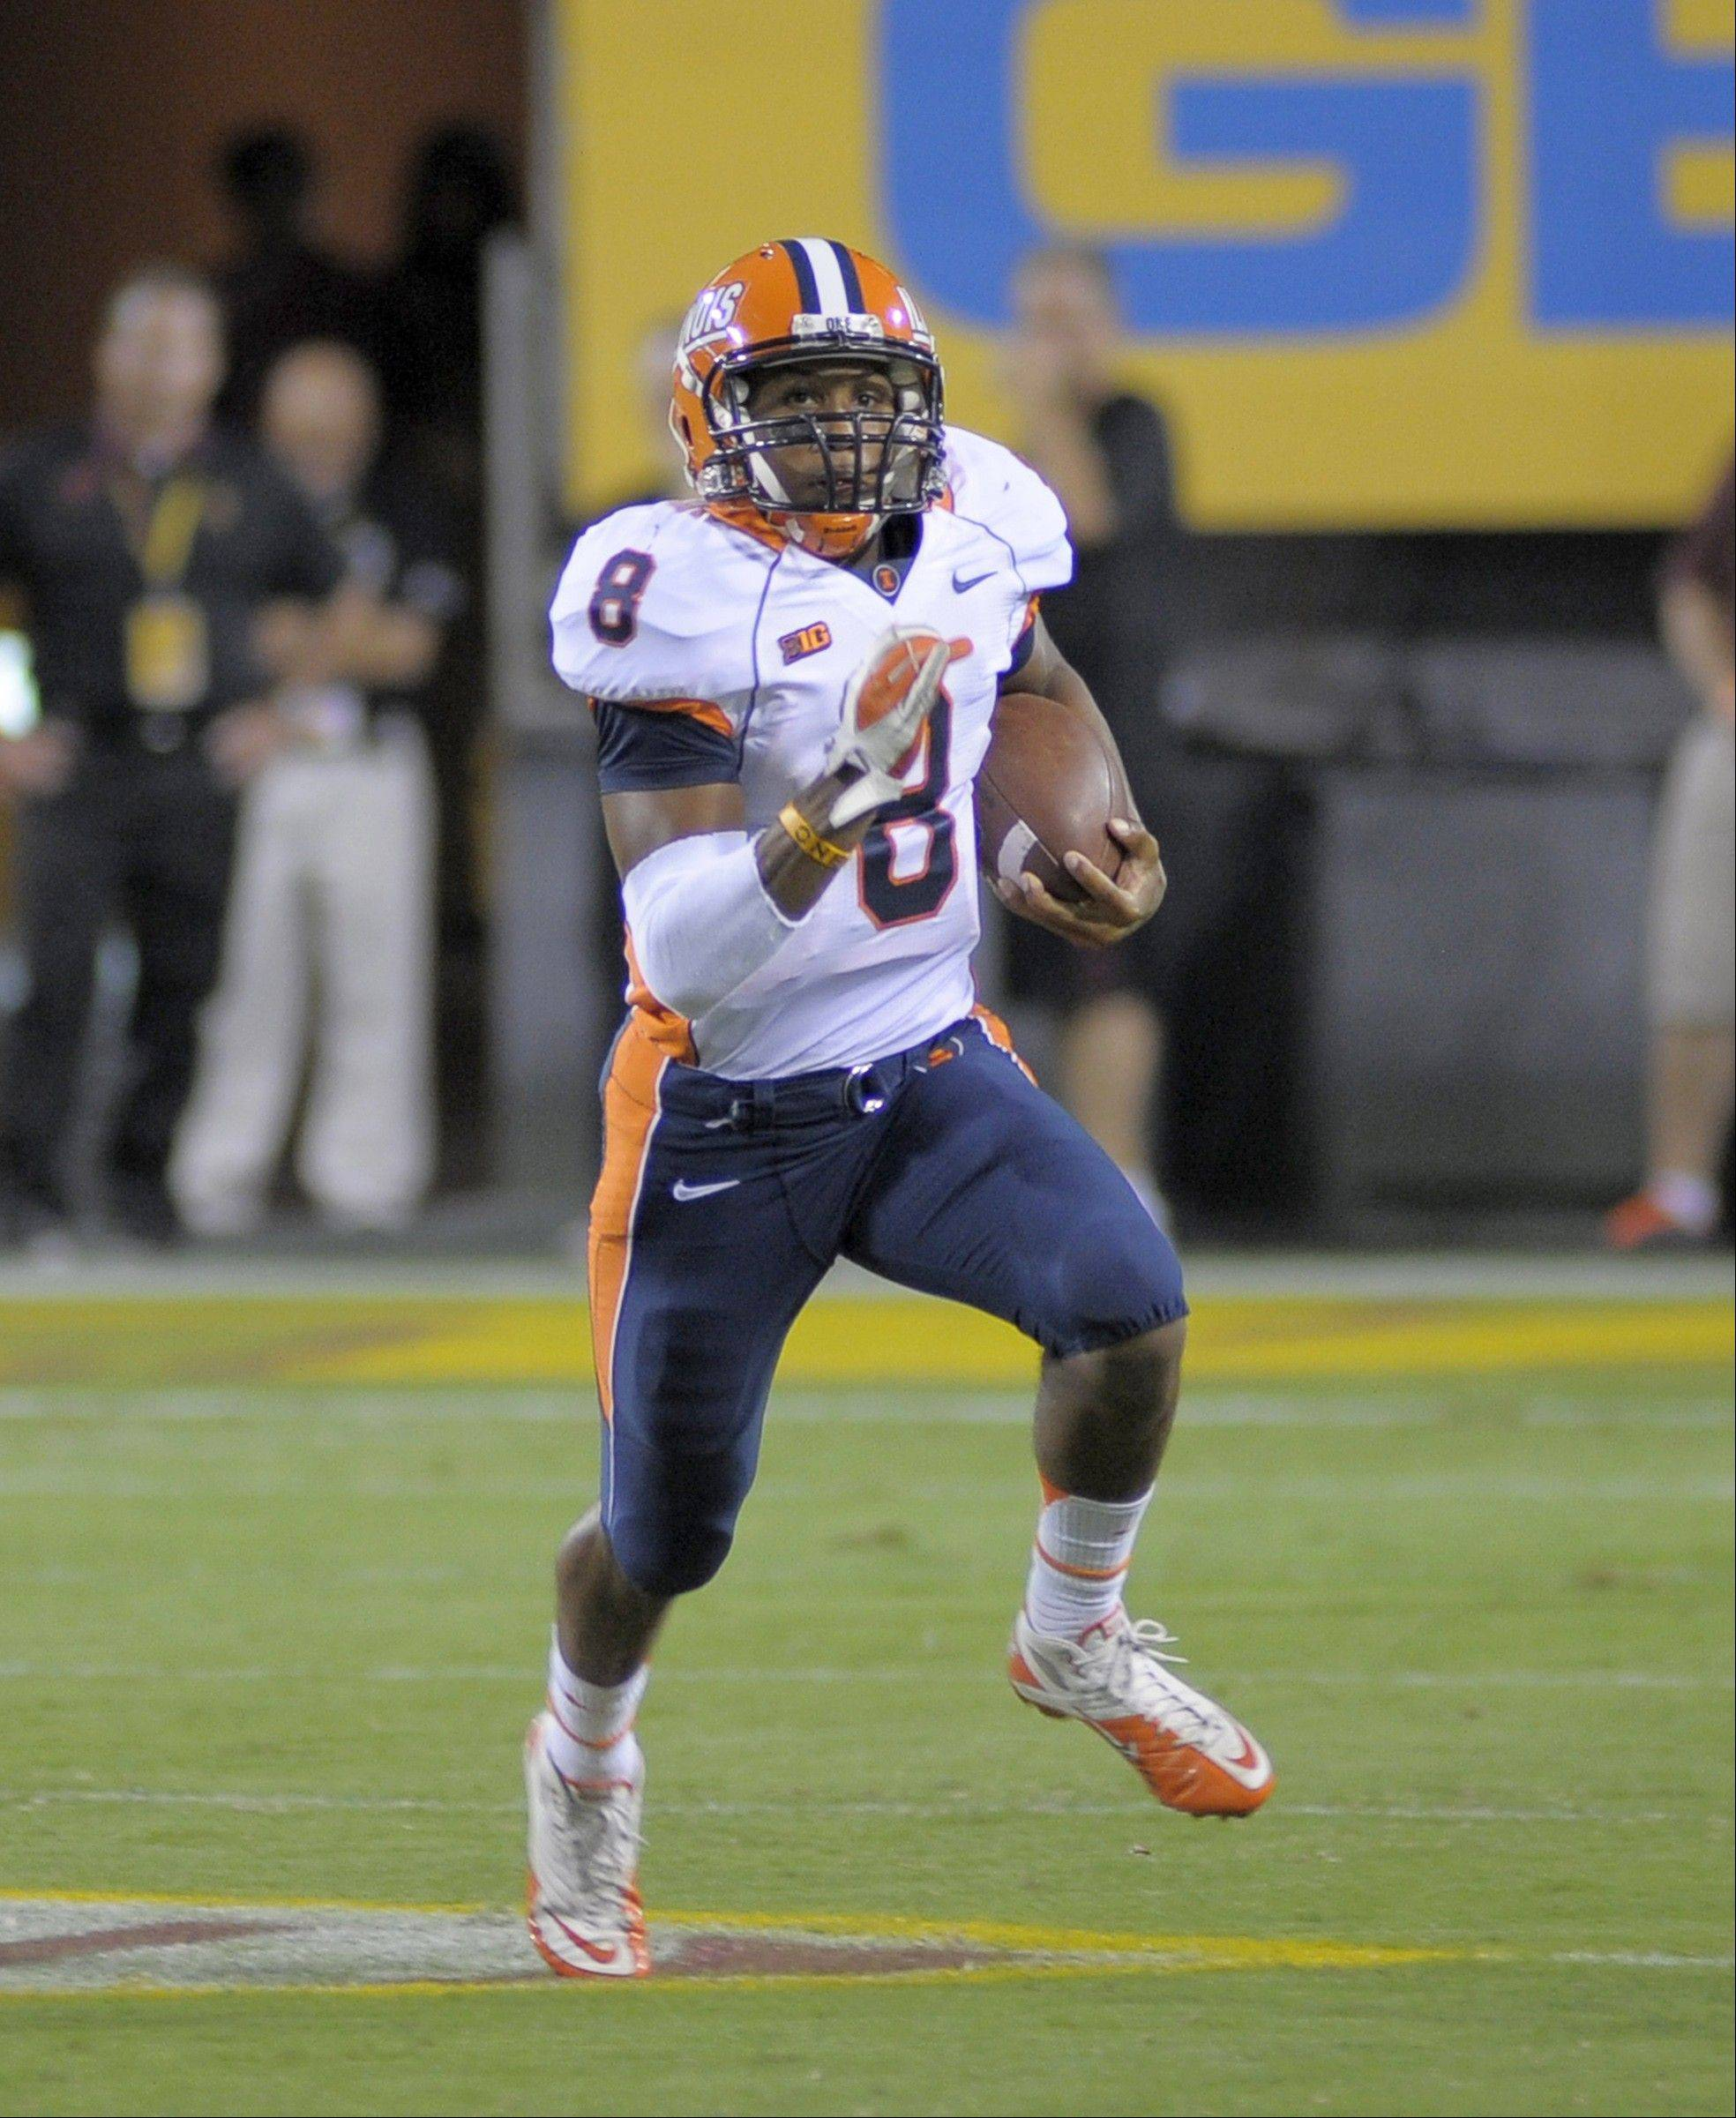 Former Prospect High School quarterback Miles Osei will open the seasons as a wide receiver for the Illini on Saturday, and it's possible he'll see some time as a kick returner.